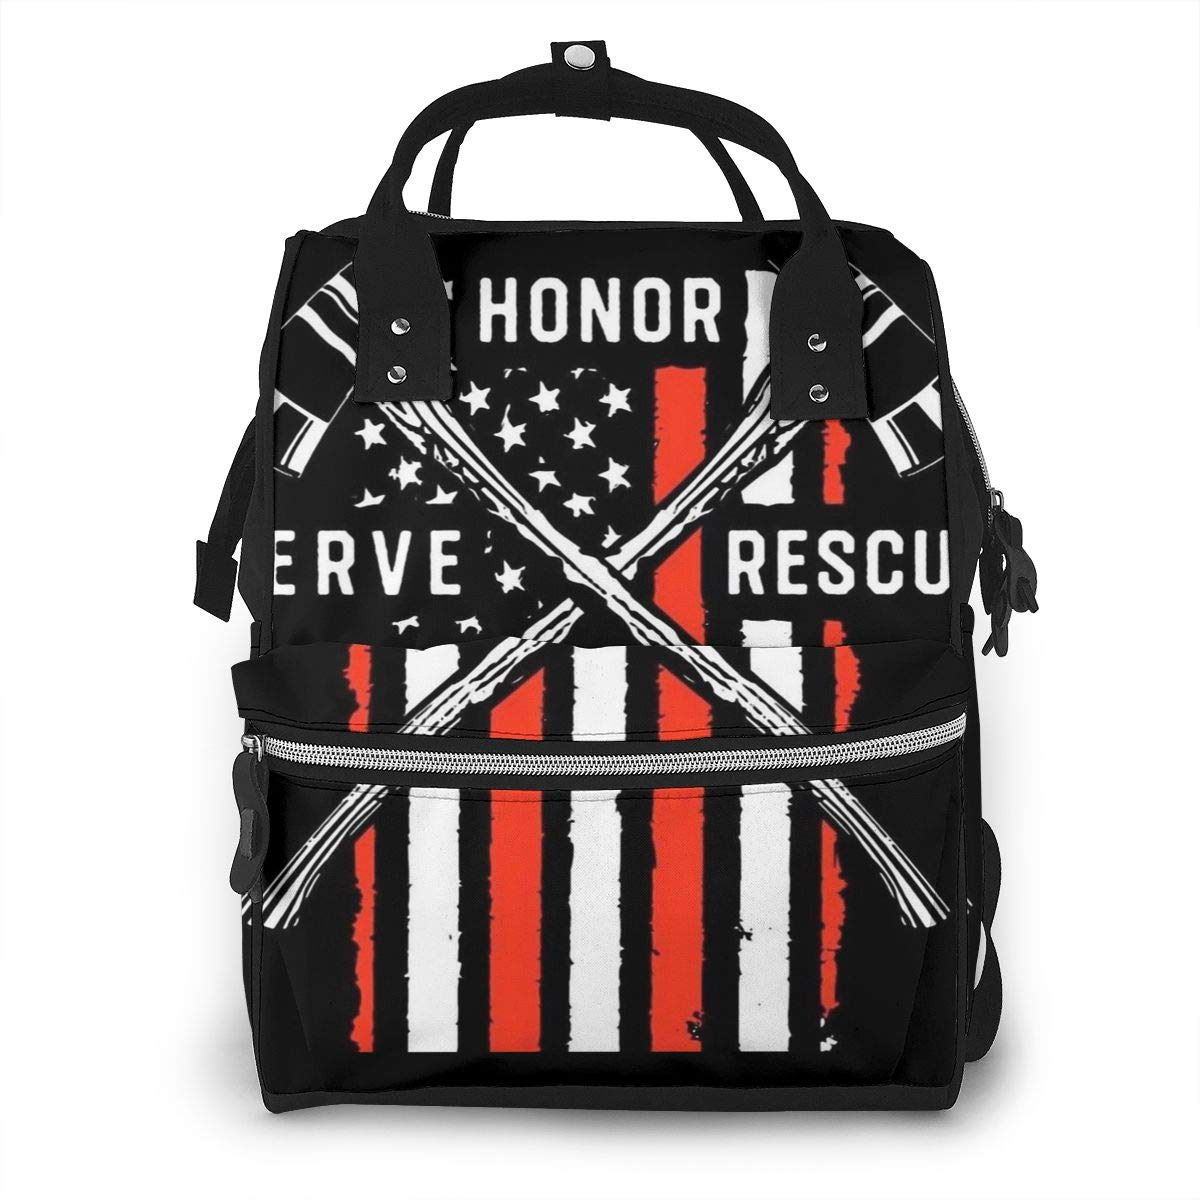 Thin Red Line Firefighter USA Flag Diaper Bag Backpack Waterproof Multi-Function Baby Changing Bags Maternity Nappy Bags Durable Large Capacity for Mom Dad Travel Baby Care